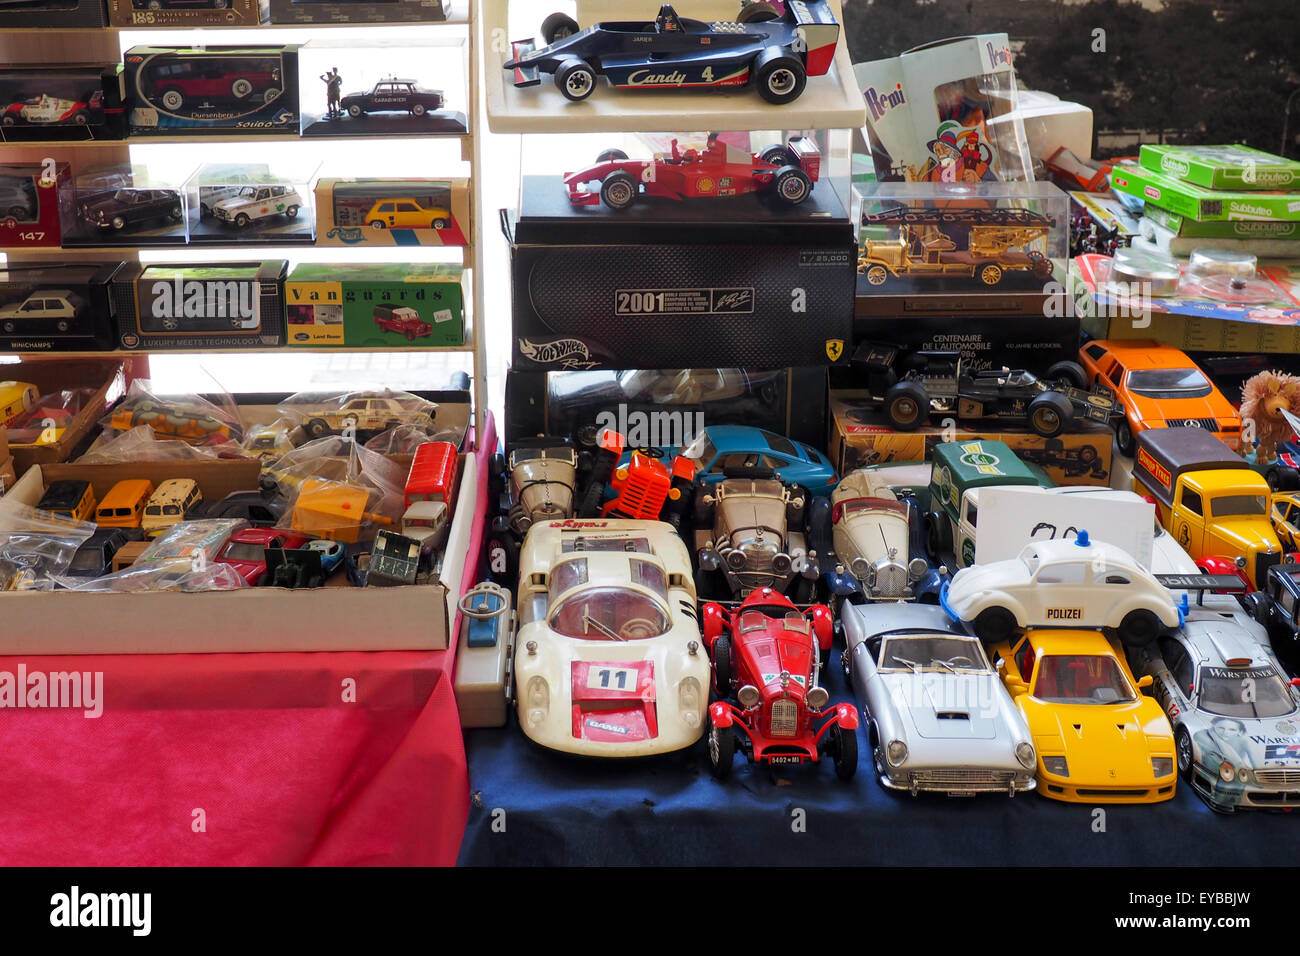 Collection of model cars on a table. - Stock Image